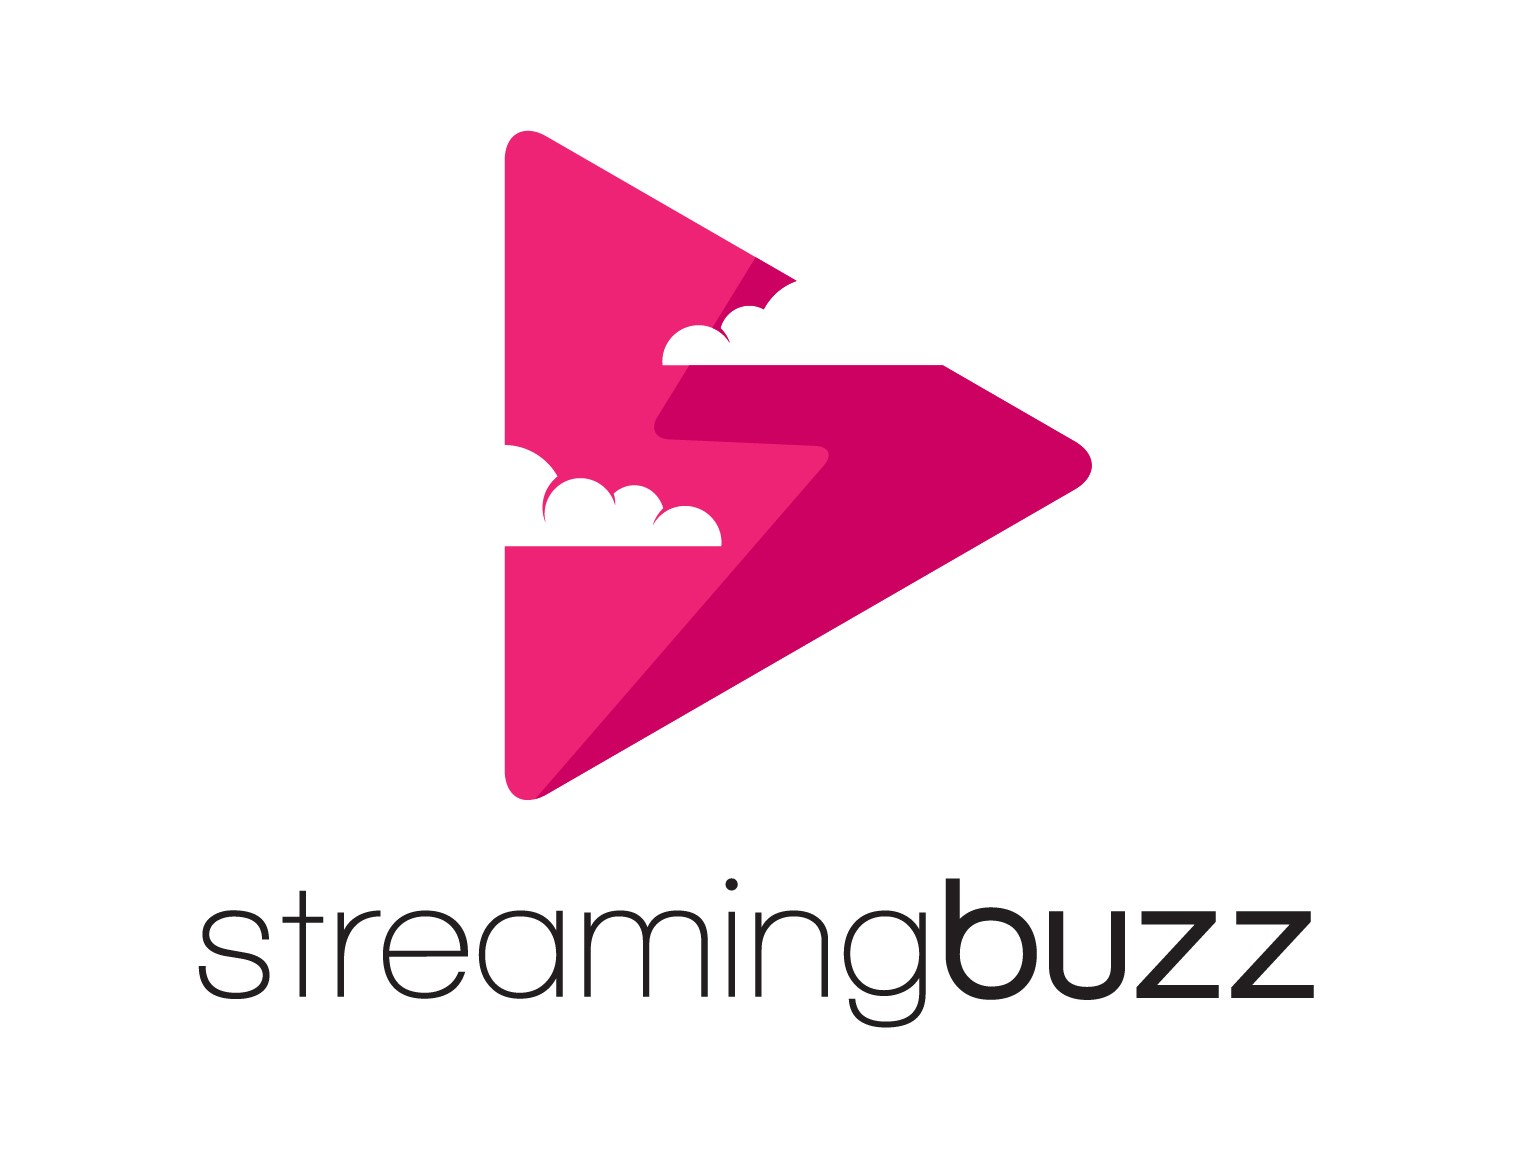 Streamingbuzz logo